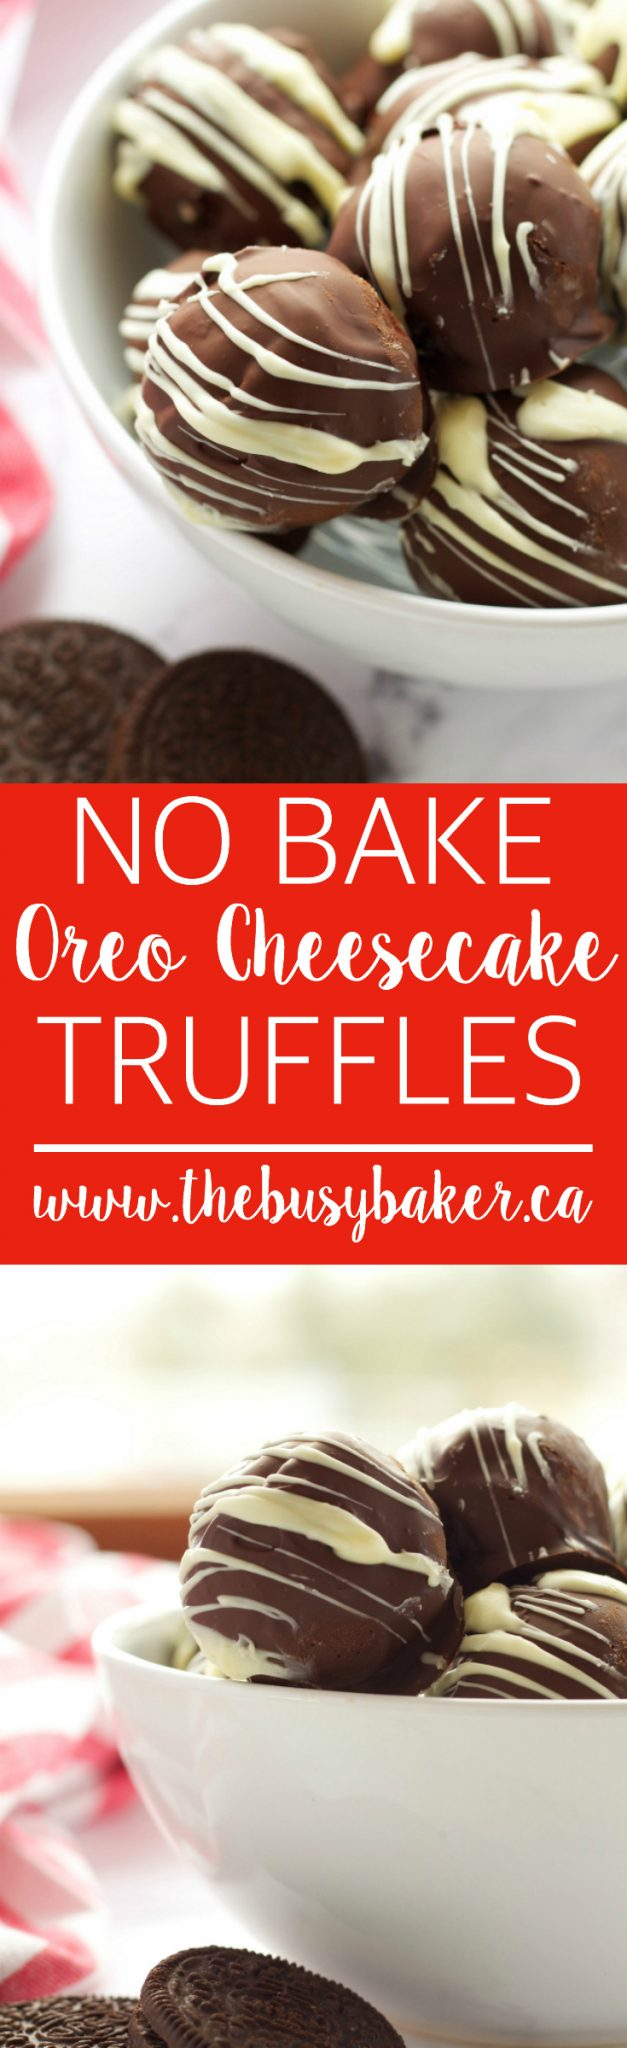 These No Bake Oreo Cheesecake Truffles are so easy to make with only 5 ingredients! They're the perfect no-bake sweet treat! Recipe from thebusybaker.ca via @busybakerblog